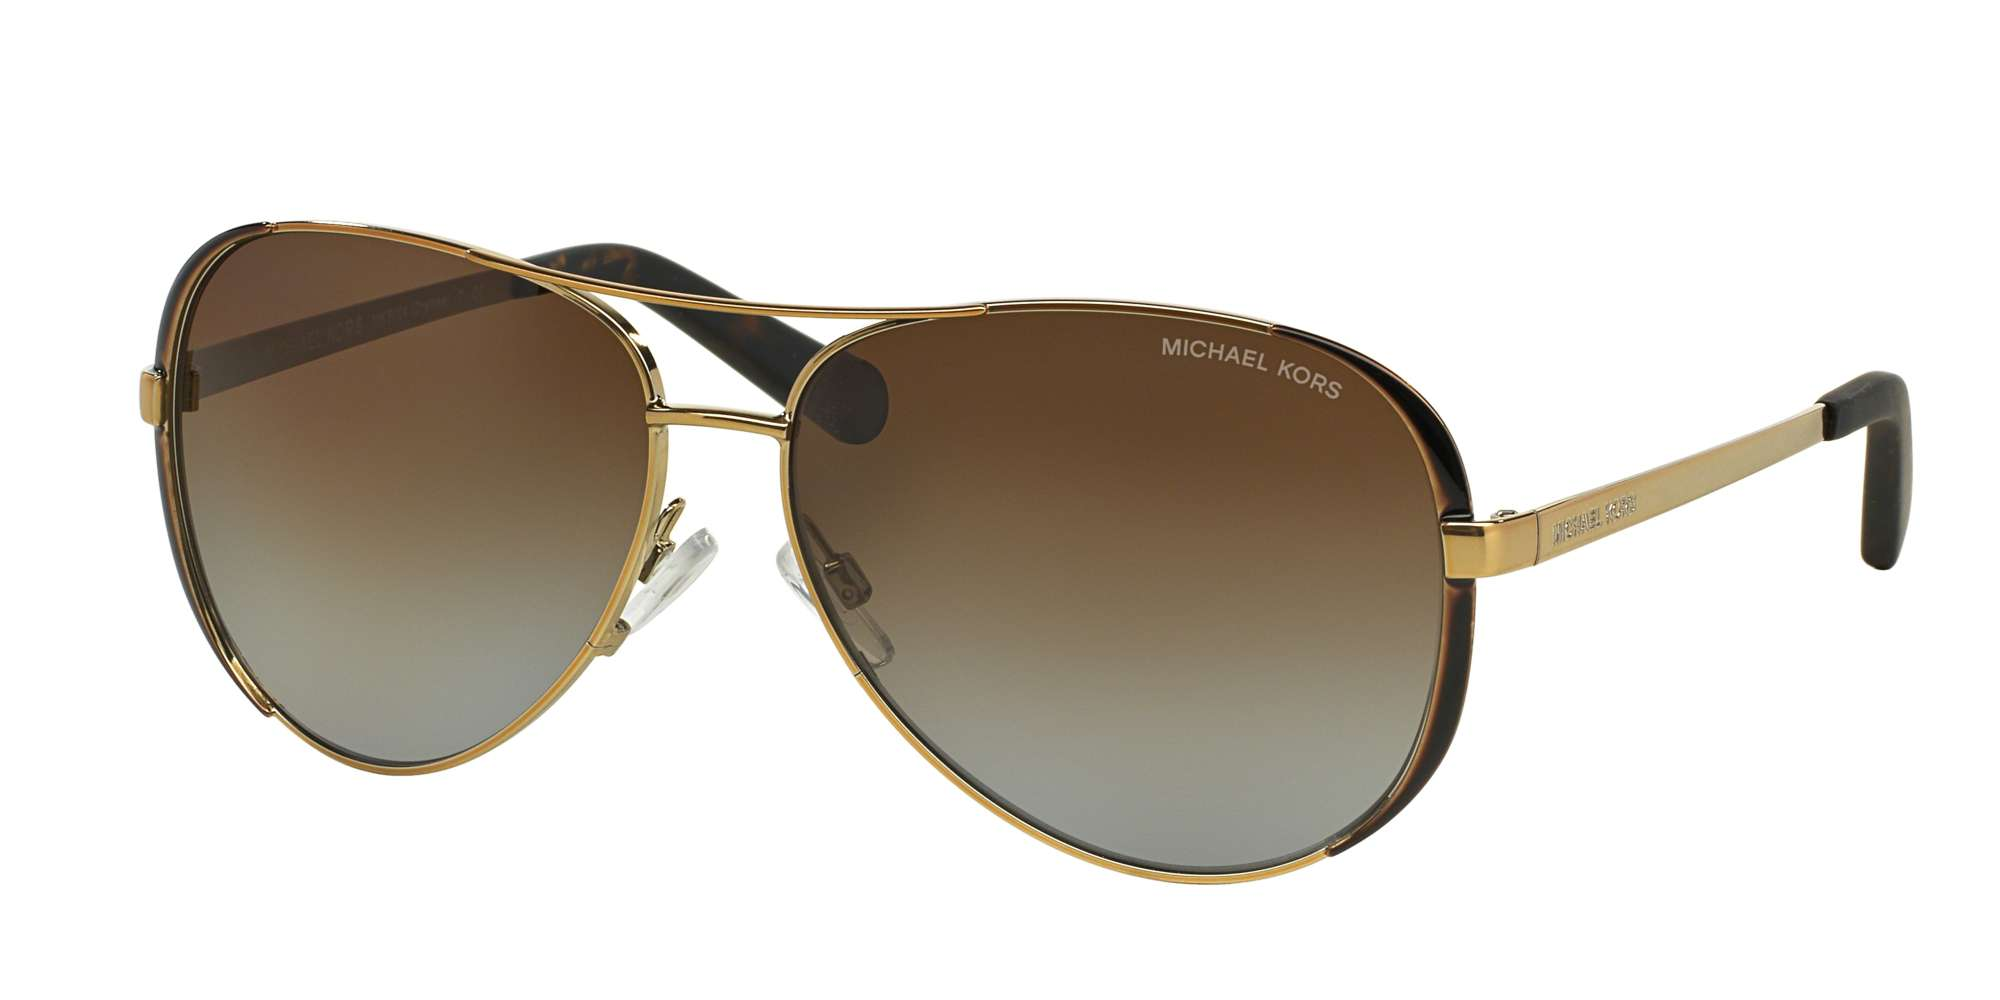 Gold - Dk Chocolate Brown / BROWN GRADIENT POLARIZED lenses